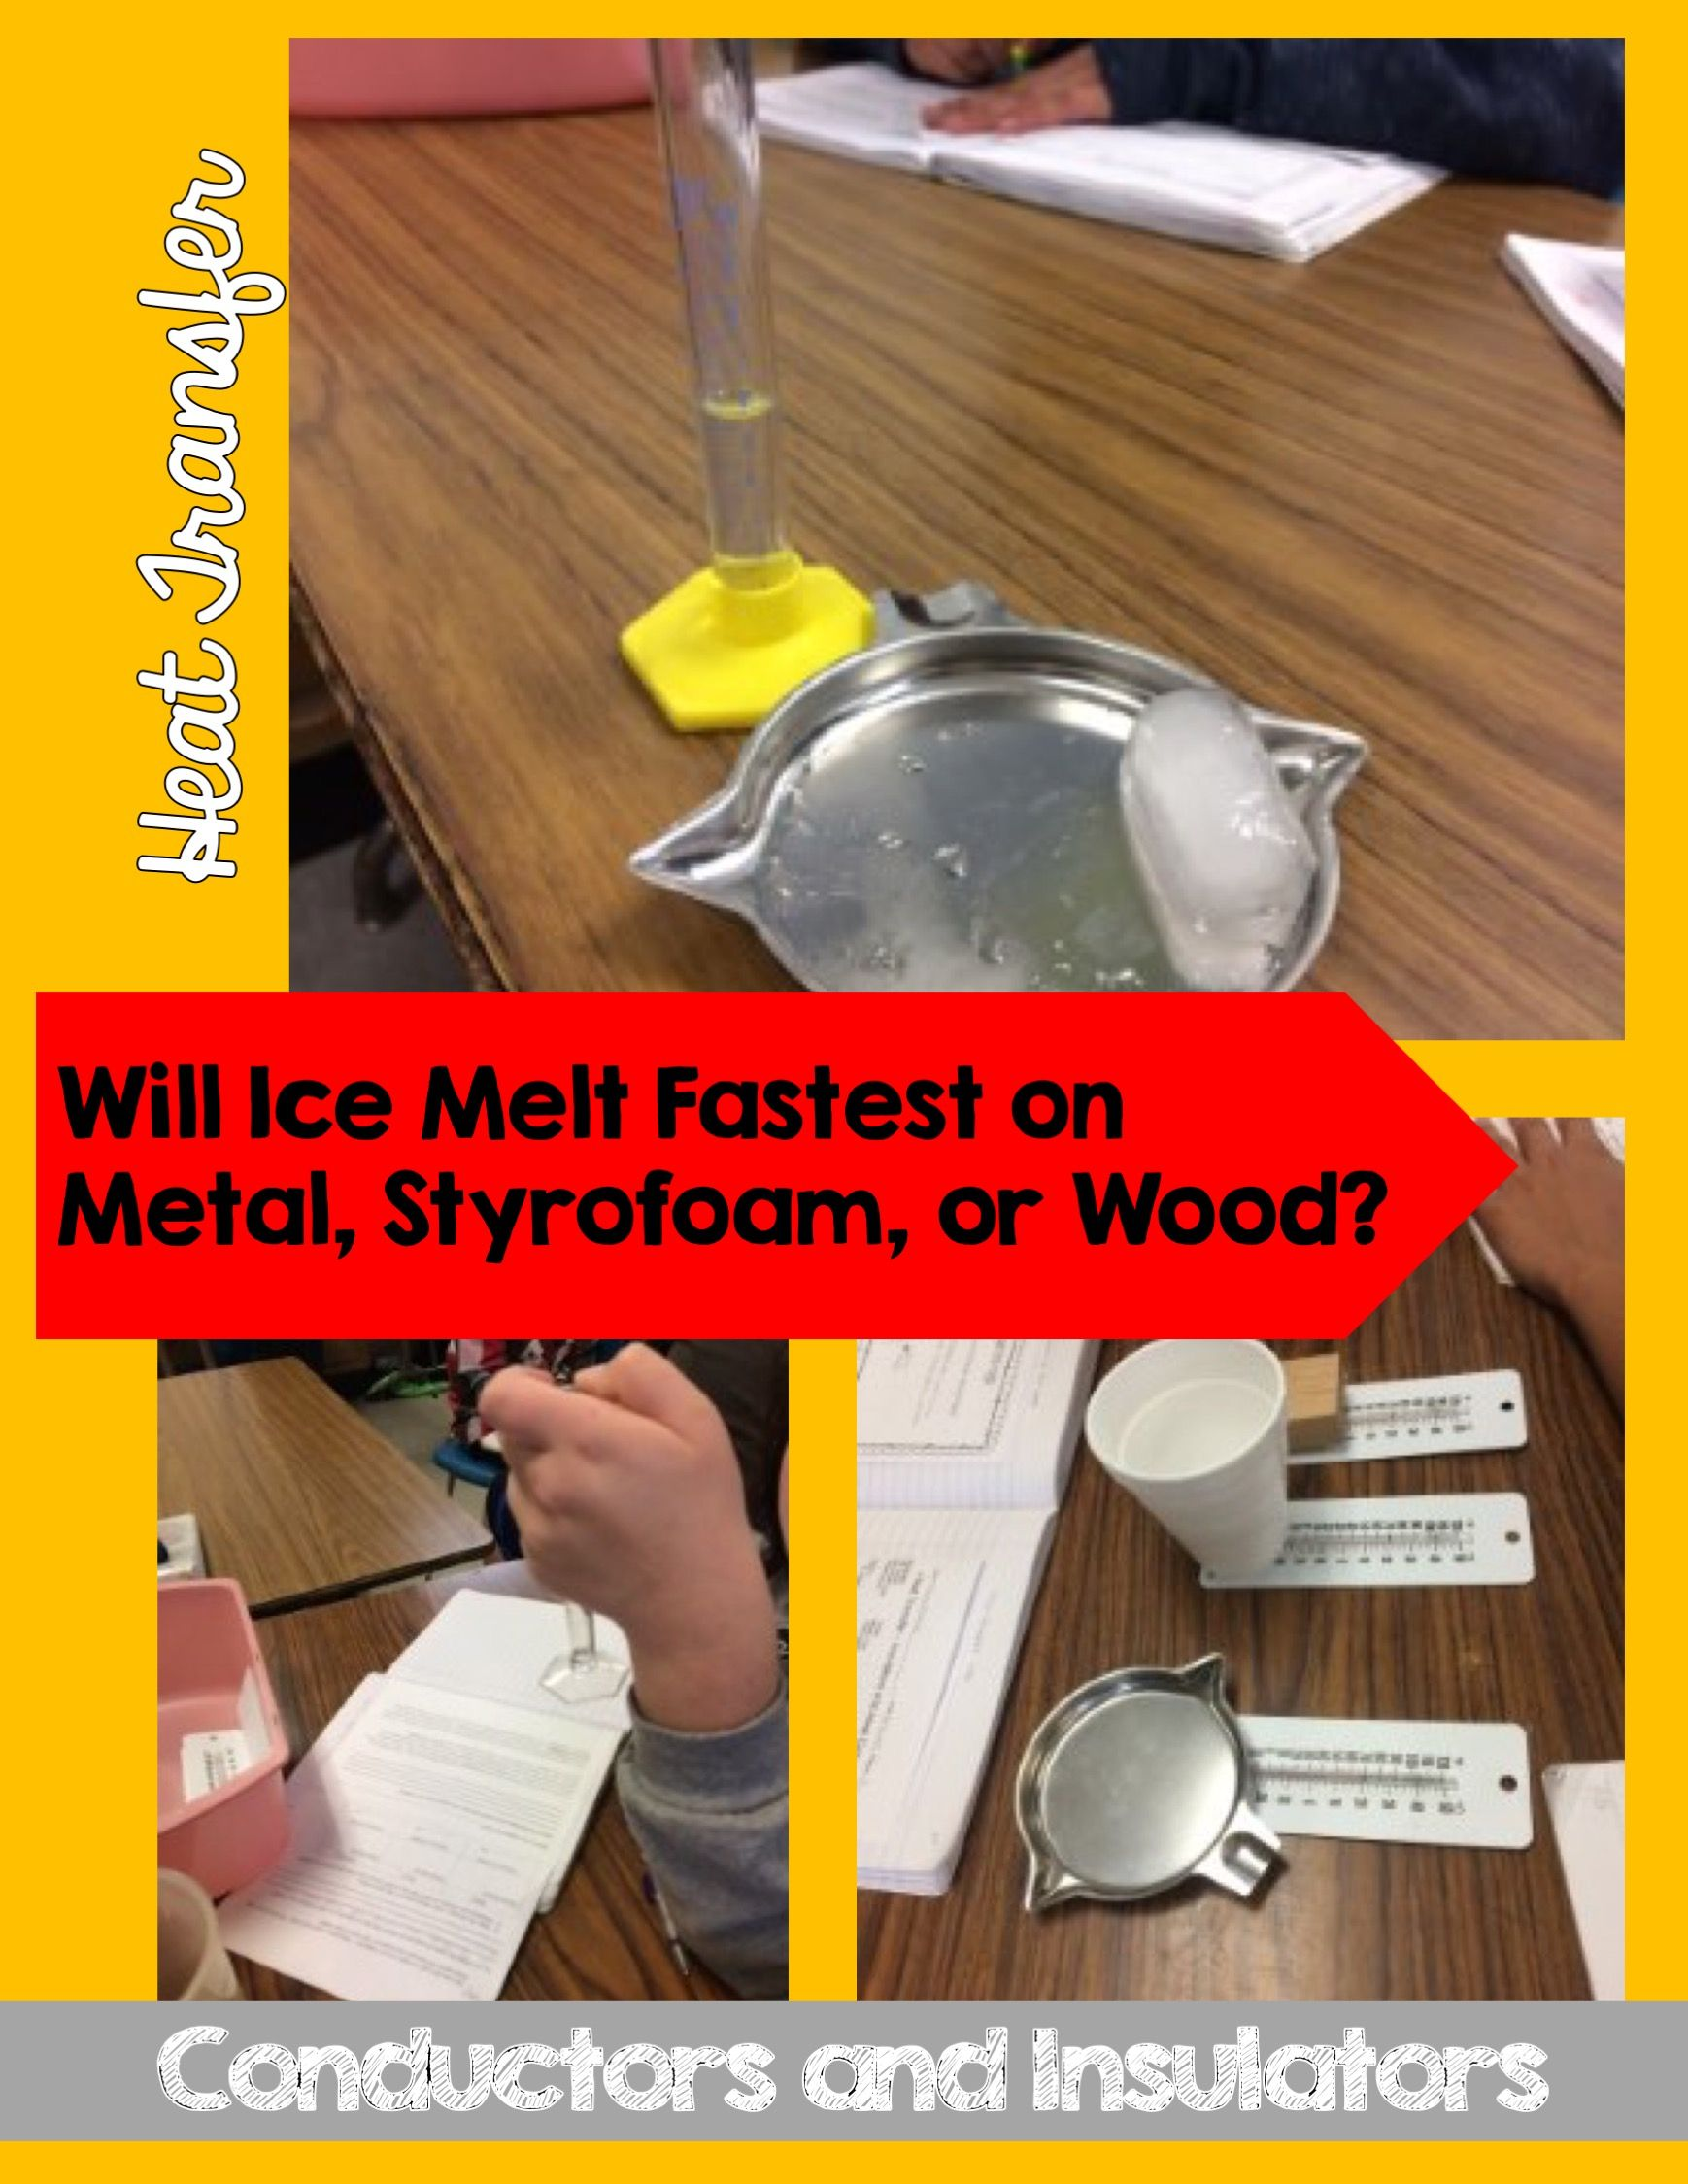 Heat Transfer Experiment Thermal Conduction And Insulation